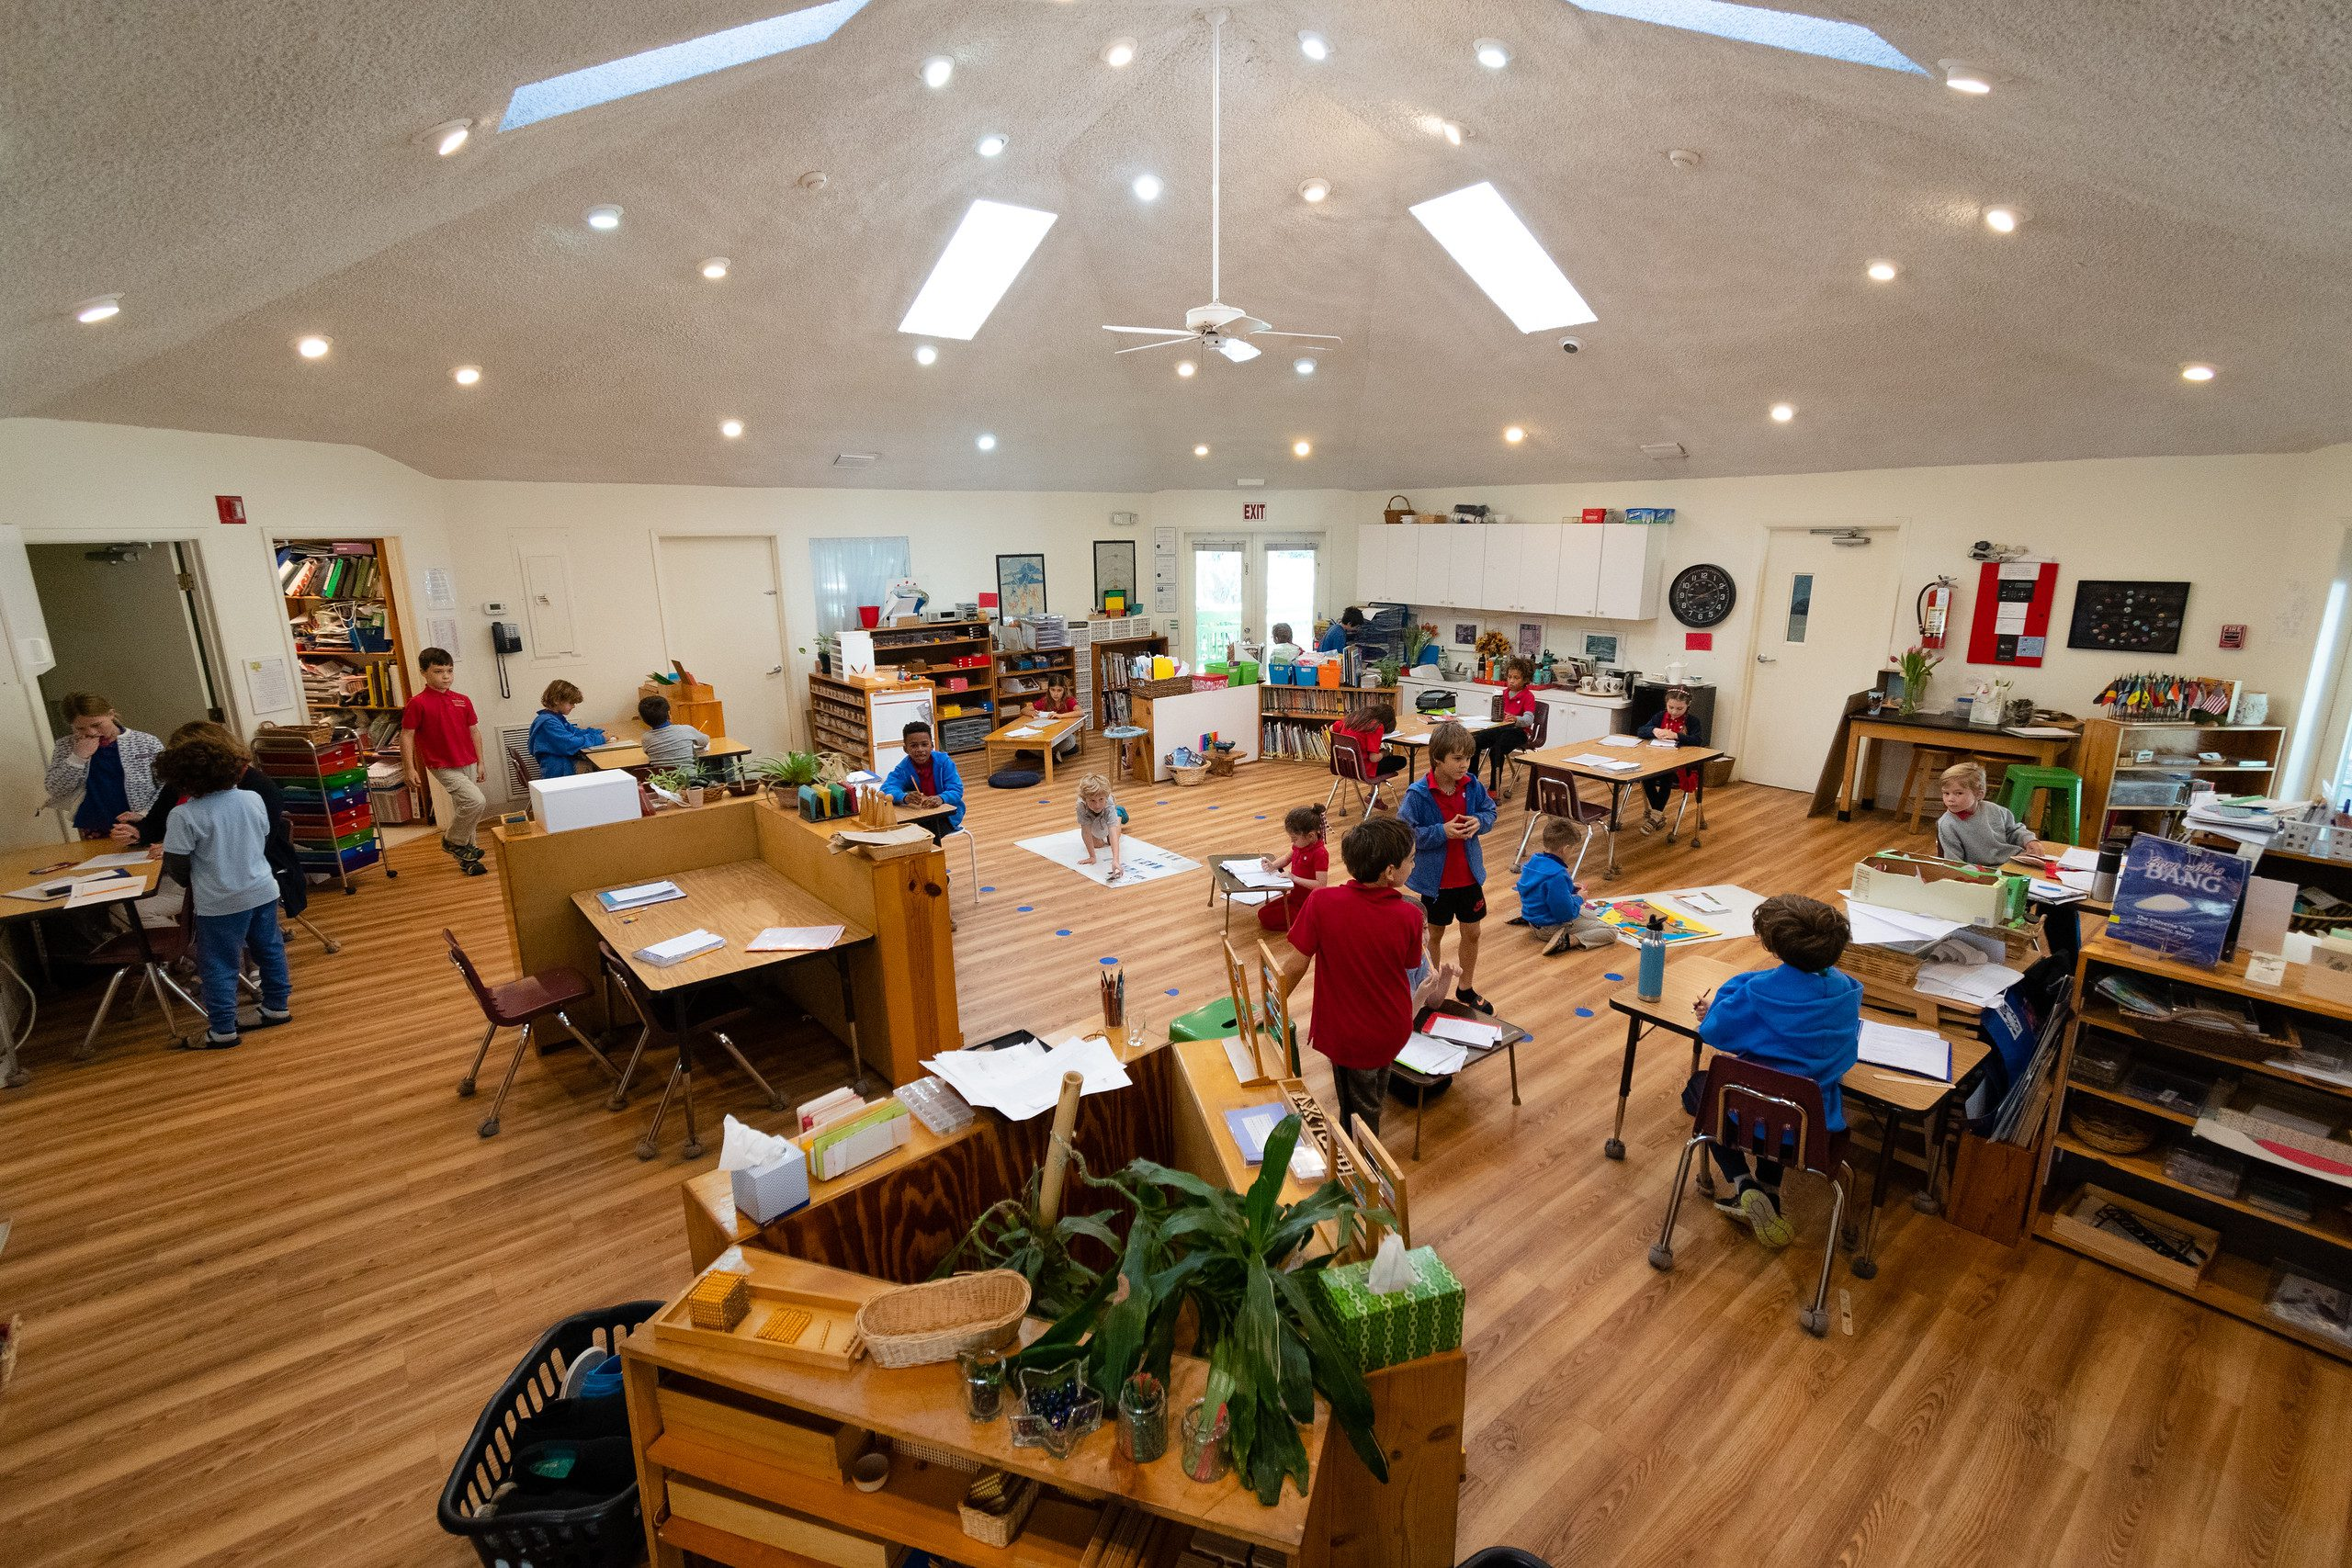 What You Will See In A Great Montessori School